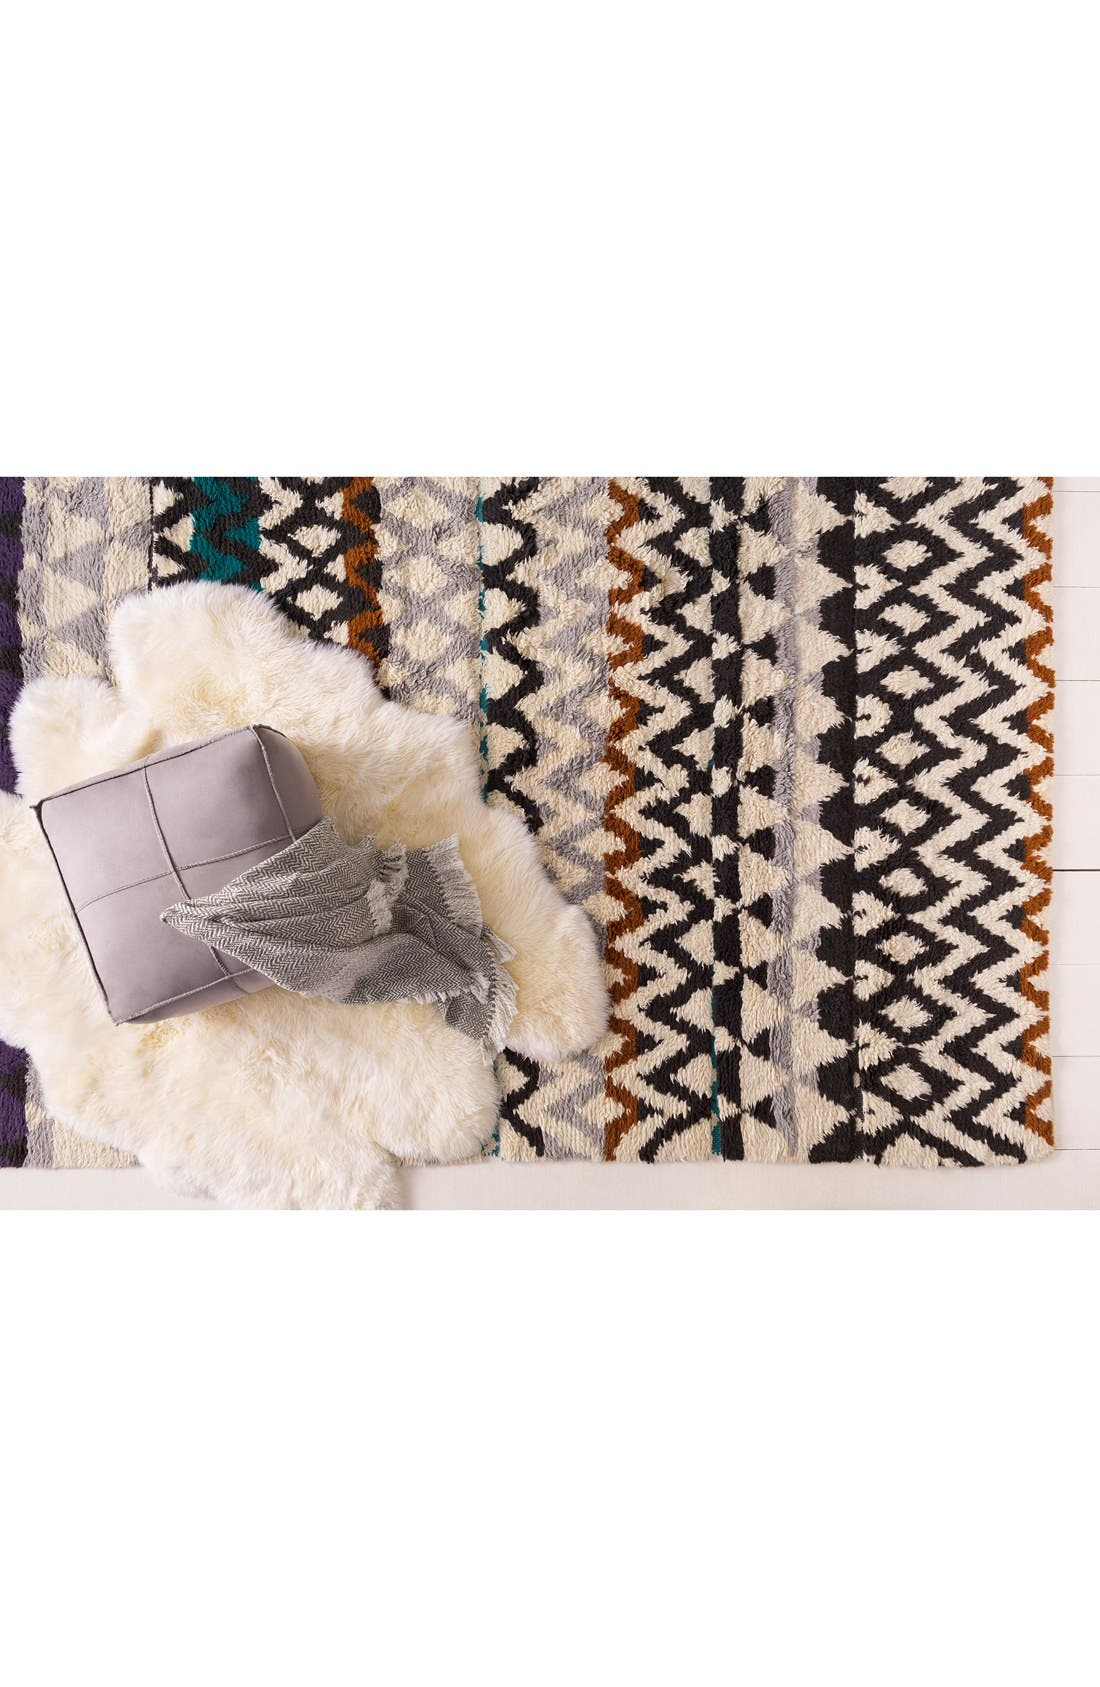 'Atticus' Hand Woven Wool Rug,                             Alternate thumbnail 3, color,                             Violet/ Charcoal Multi